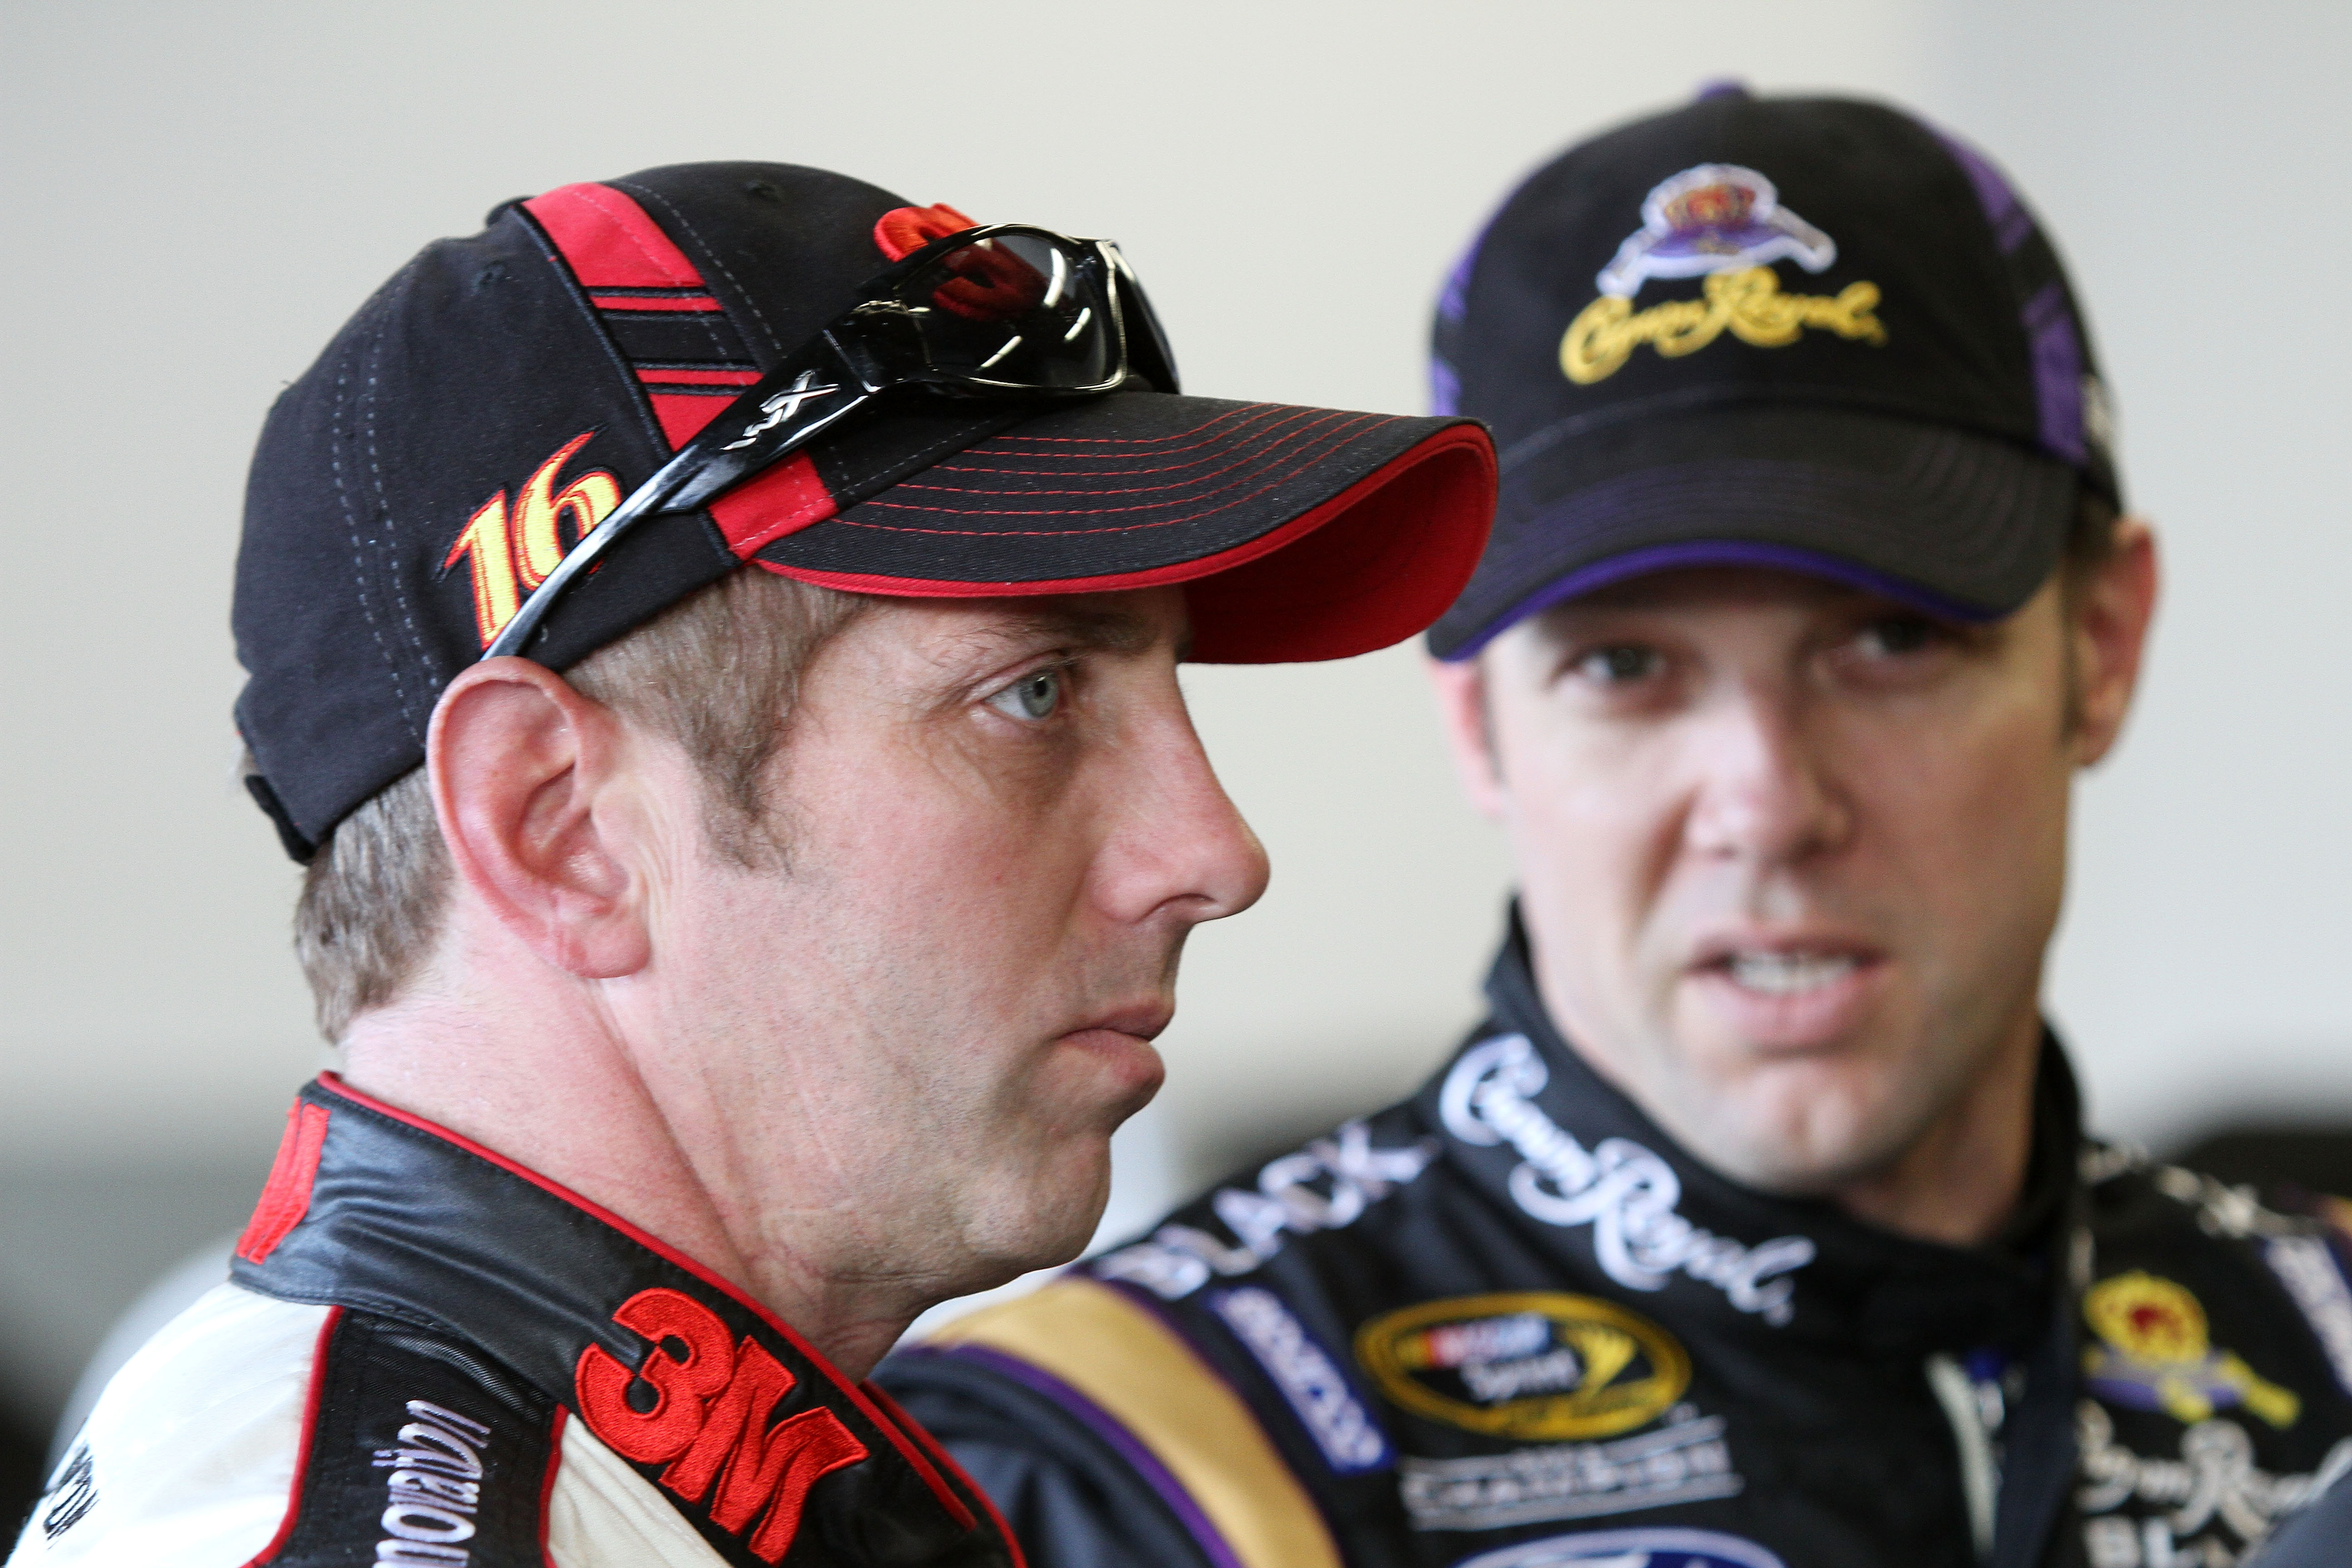 Matt Kenseth has three teammates and two of them are experienced drafting partners.